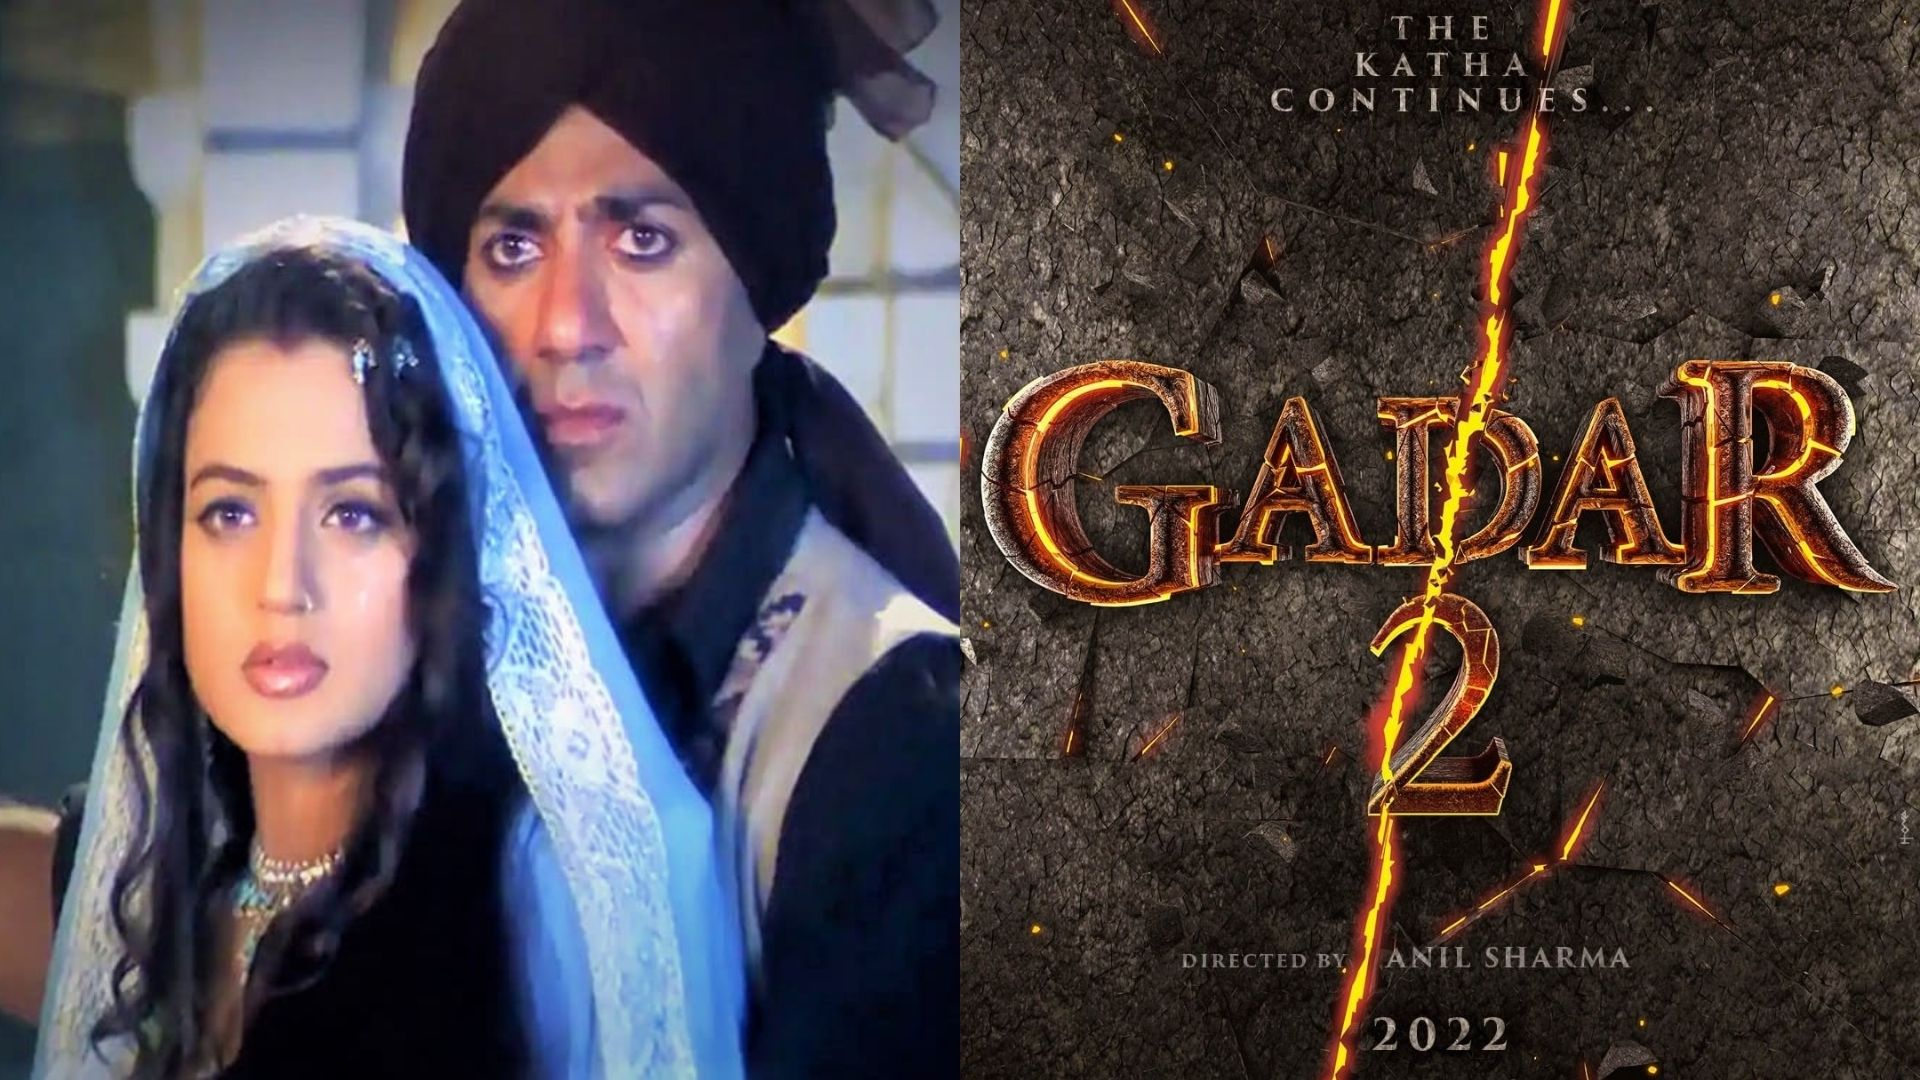 Gadar 2 Motion Poster: Sunny Deol And Ameesha Patel Are Back After 20 Years With 'The Biggest Sequel Ever'